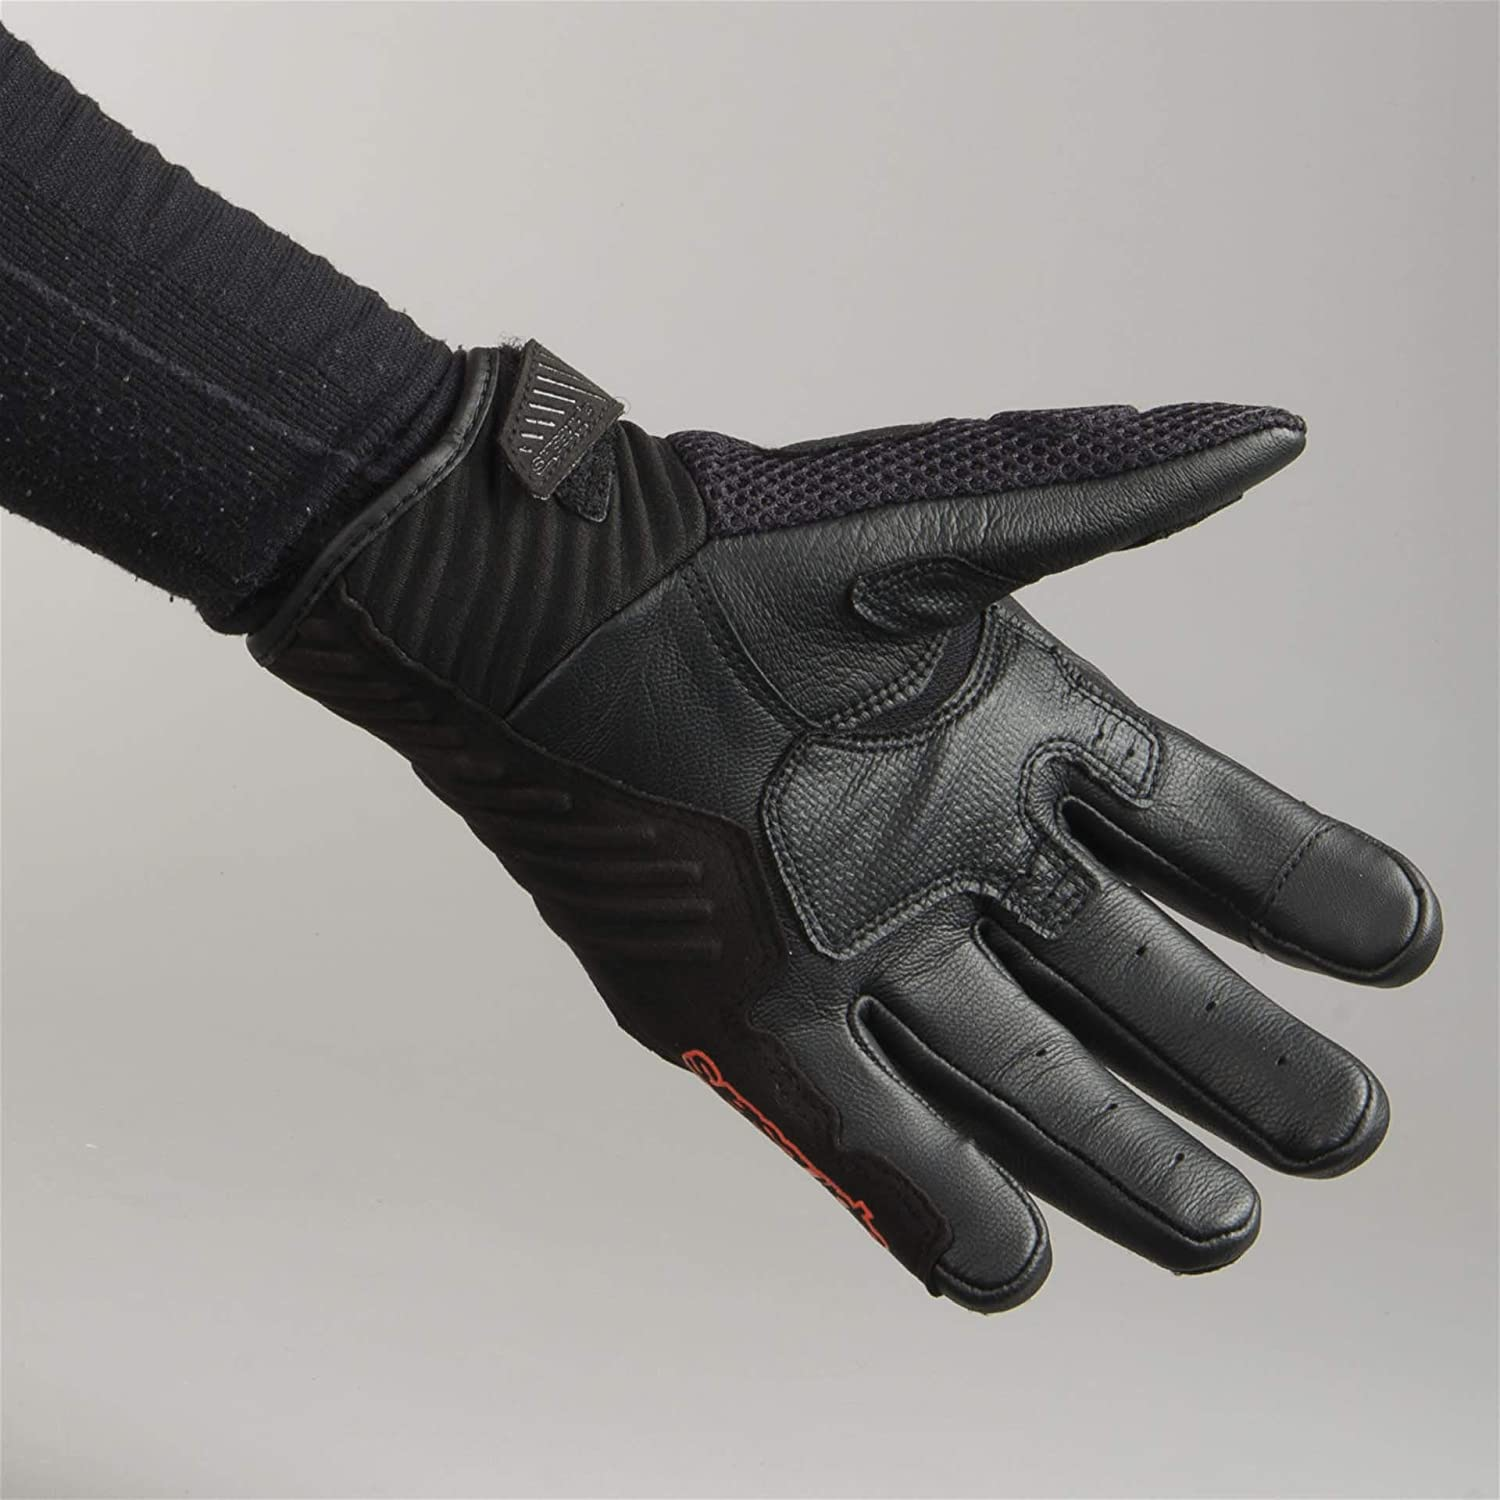 Black//Red Sz M Alpinestars SMX-1 Air V2 Vented Leather Motorcycle Glove